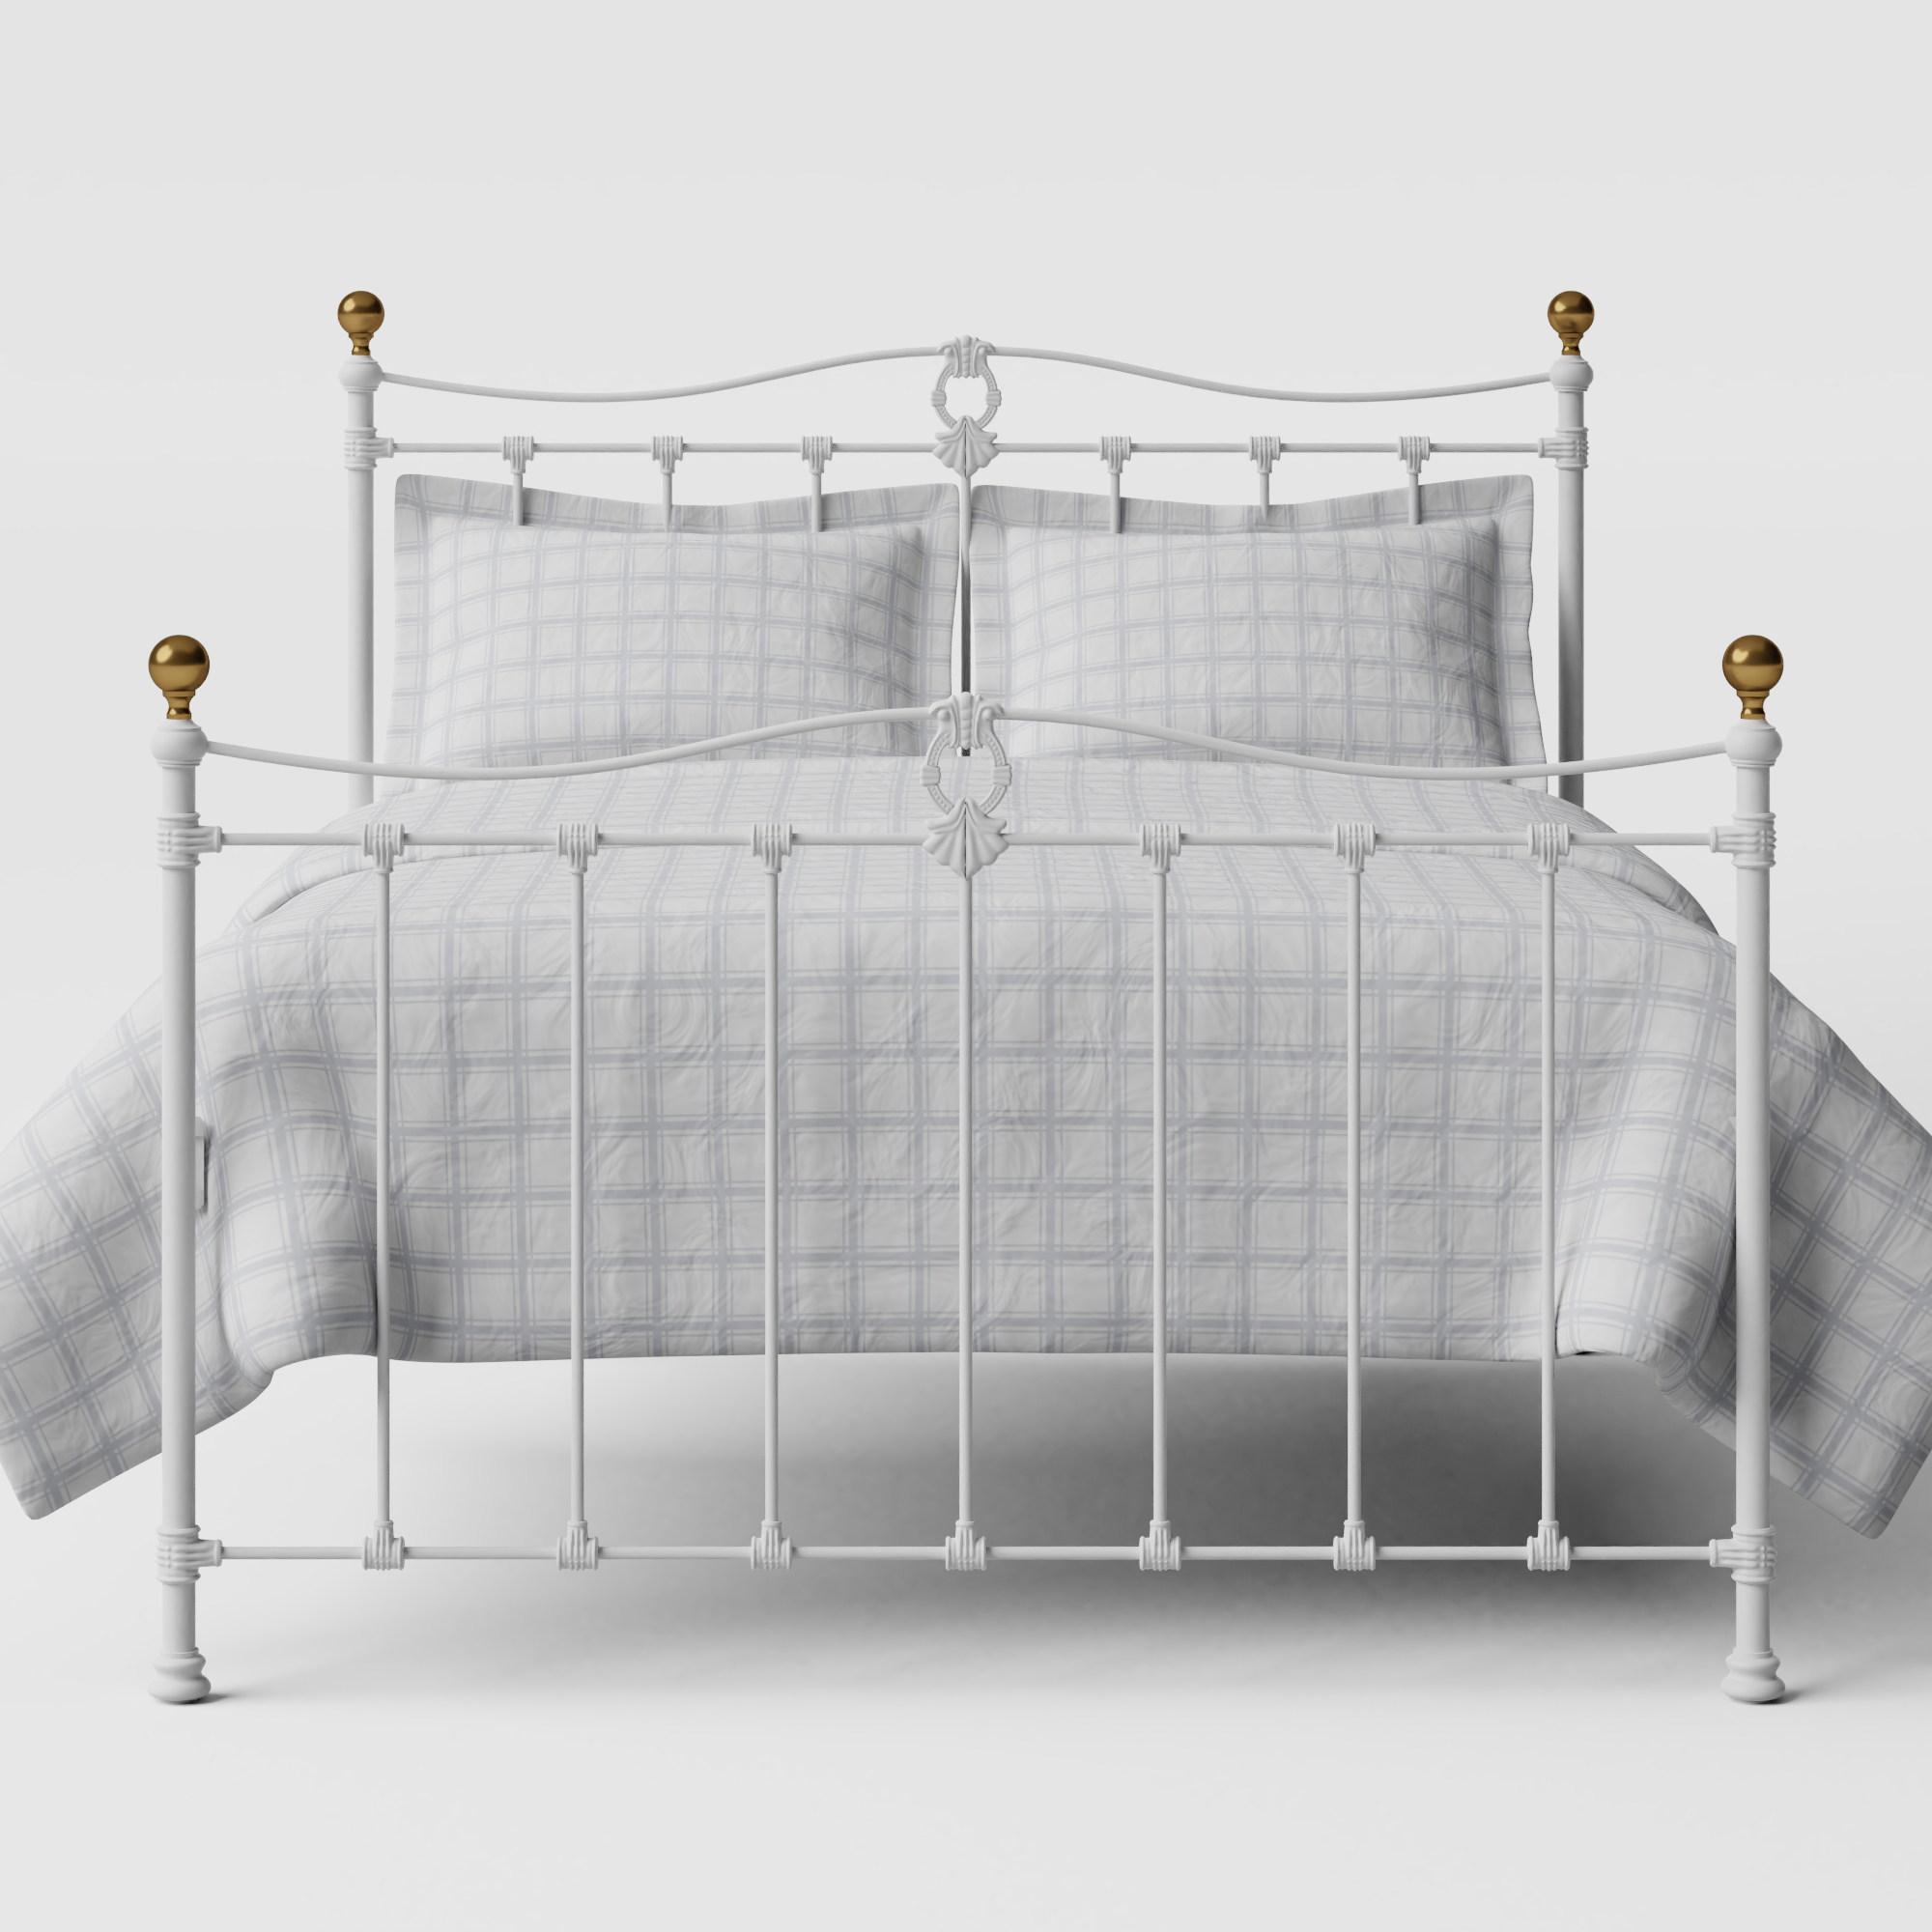 Tulsk iron/metal bed in white